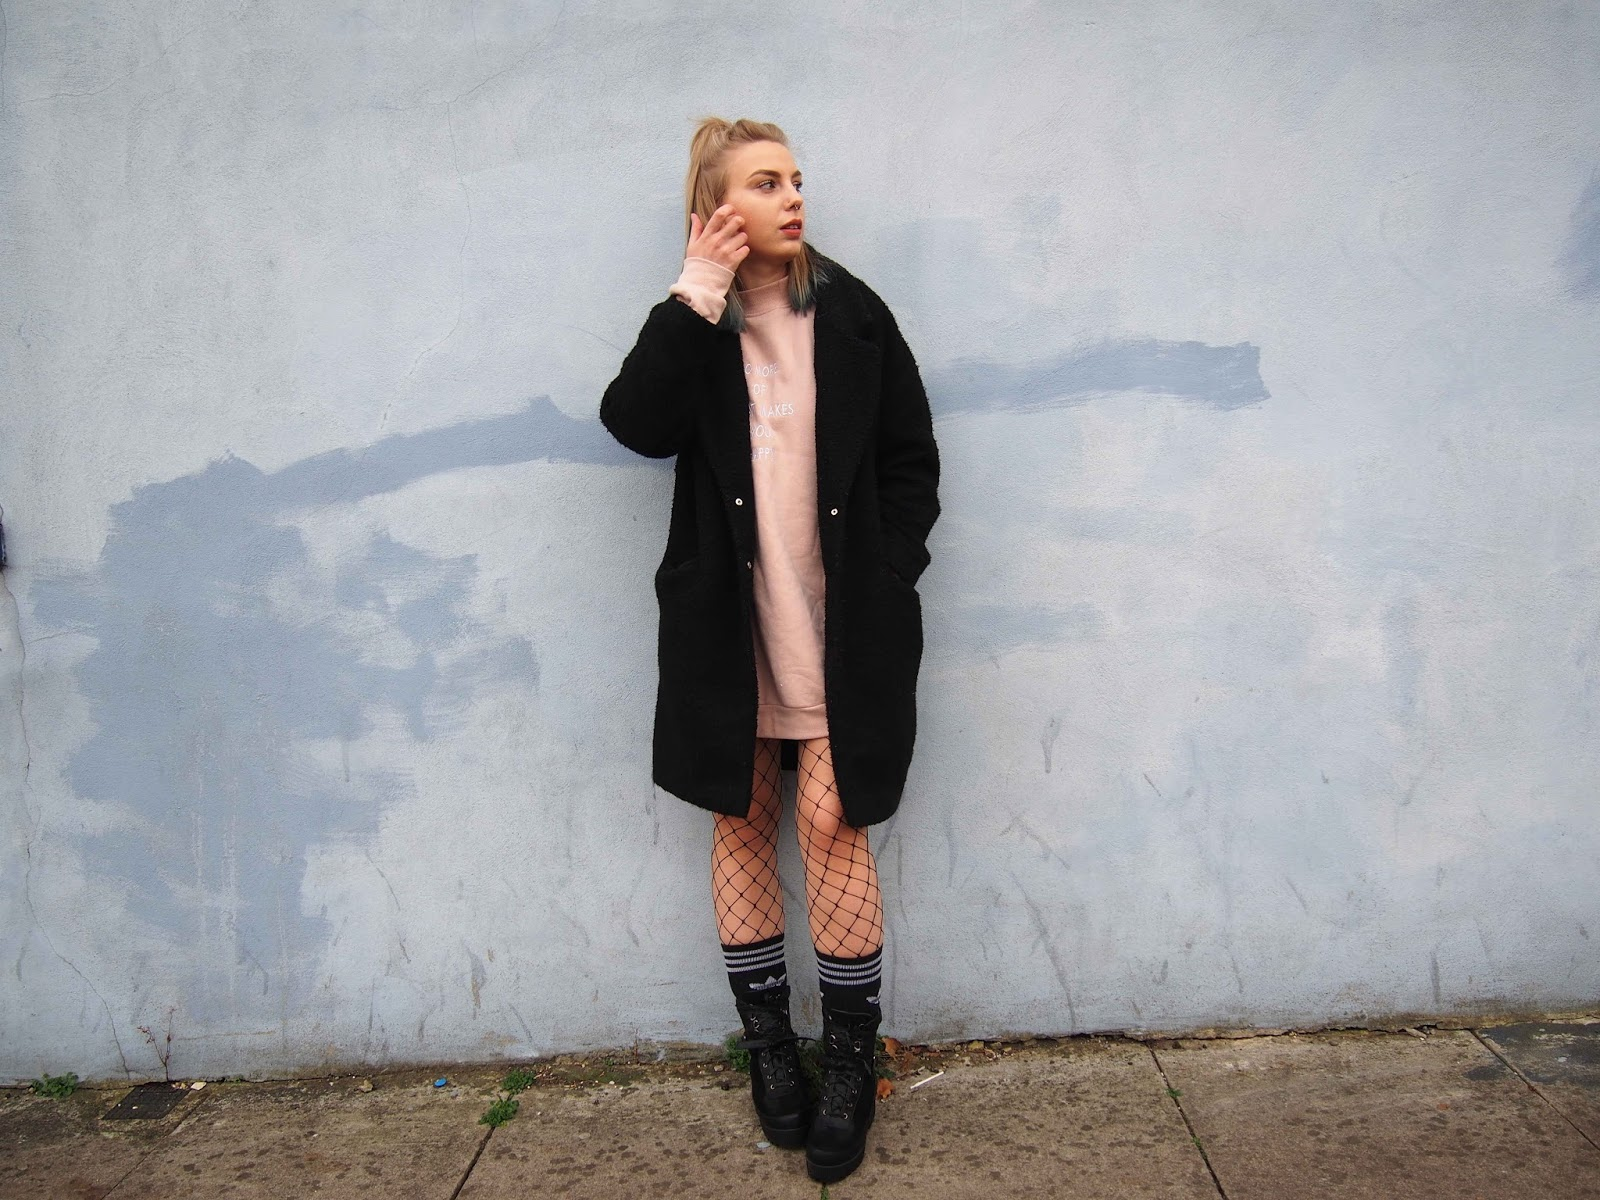 oversized duster jacket coat, oversized pink jumper dress primark, fishnet tights, adidas sock, chunky biker boots, autumn winter outfit, grunge 90s alternative style 1